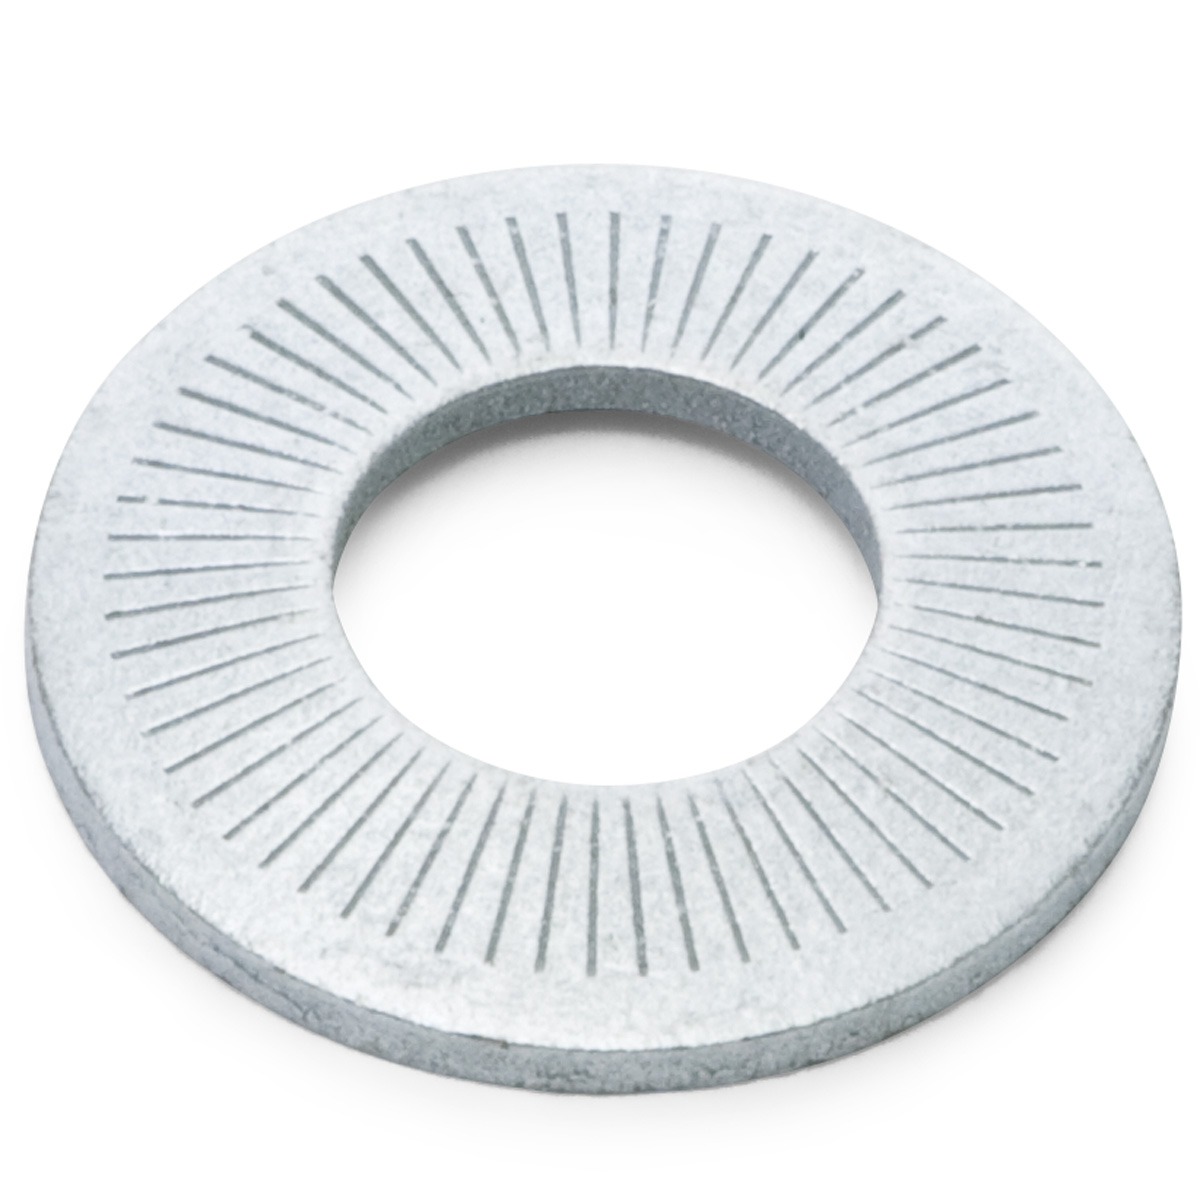 M10 Ribbed Conical Lock Washer - Kimball Midwest